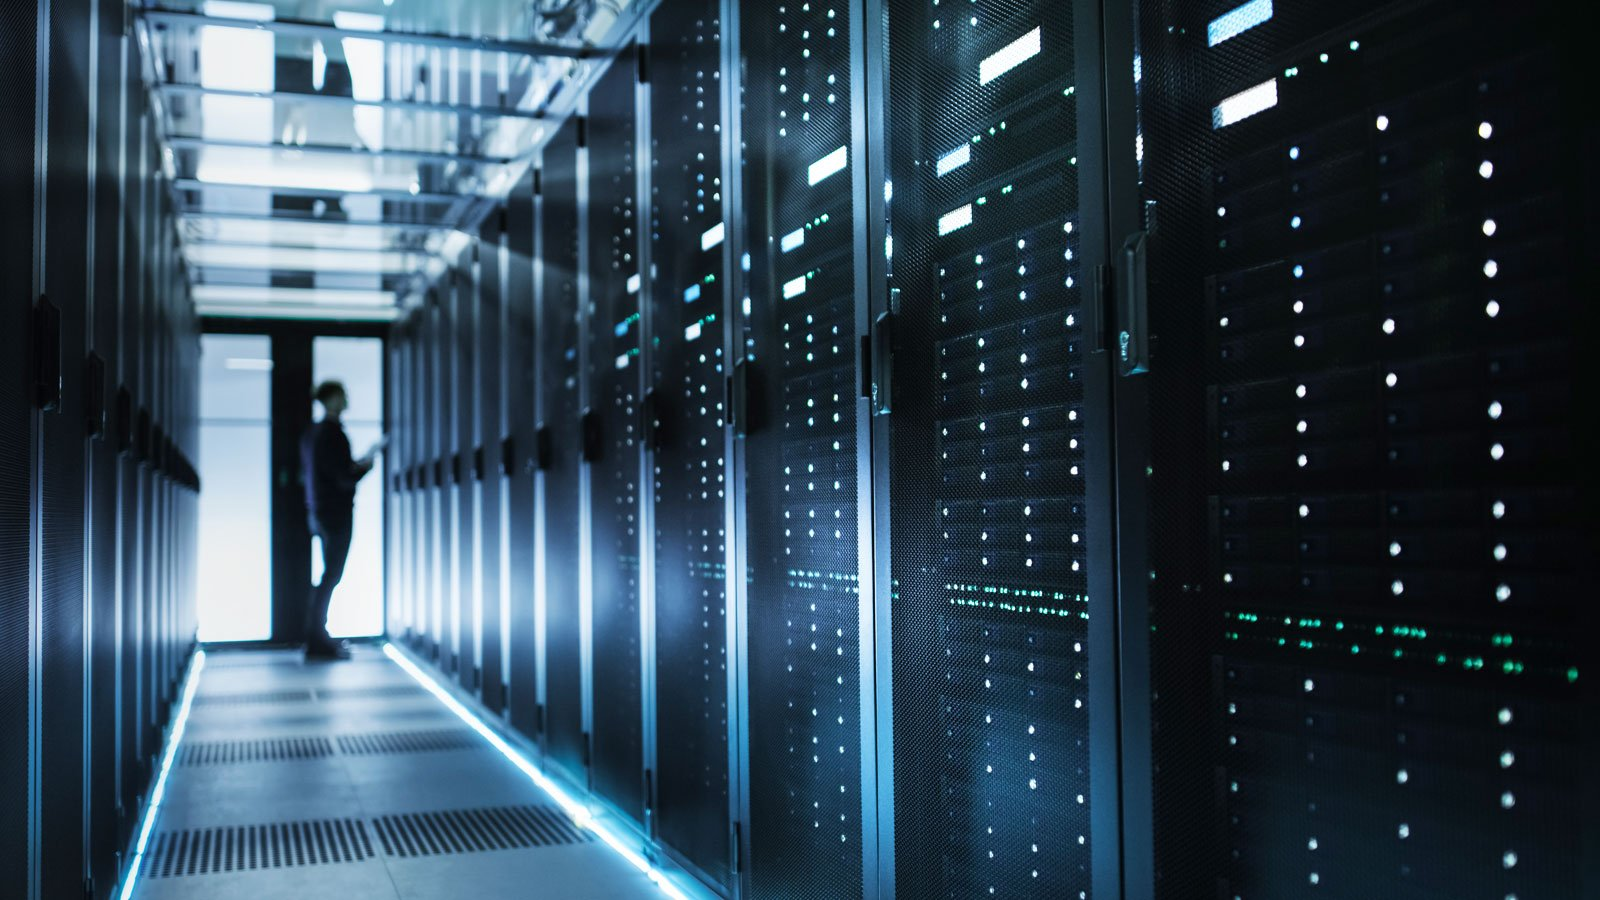 File Servers Done Properly – Important Files Need Proper Protection